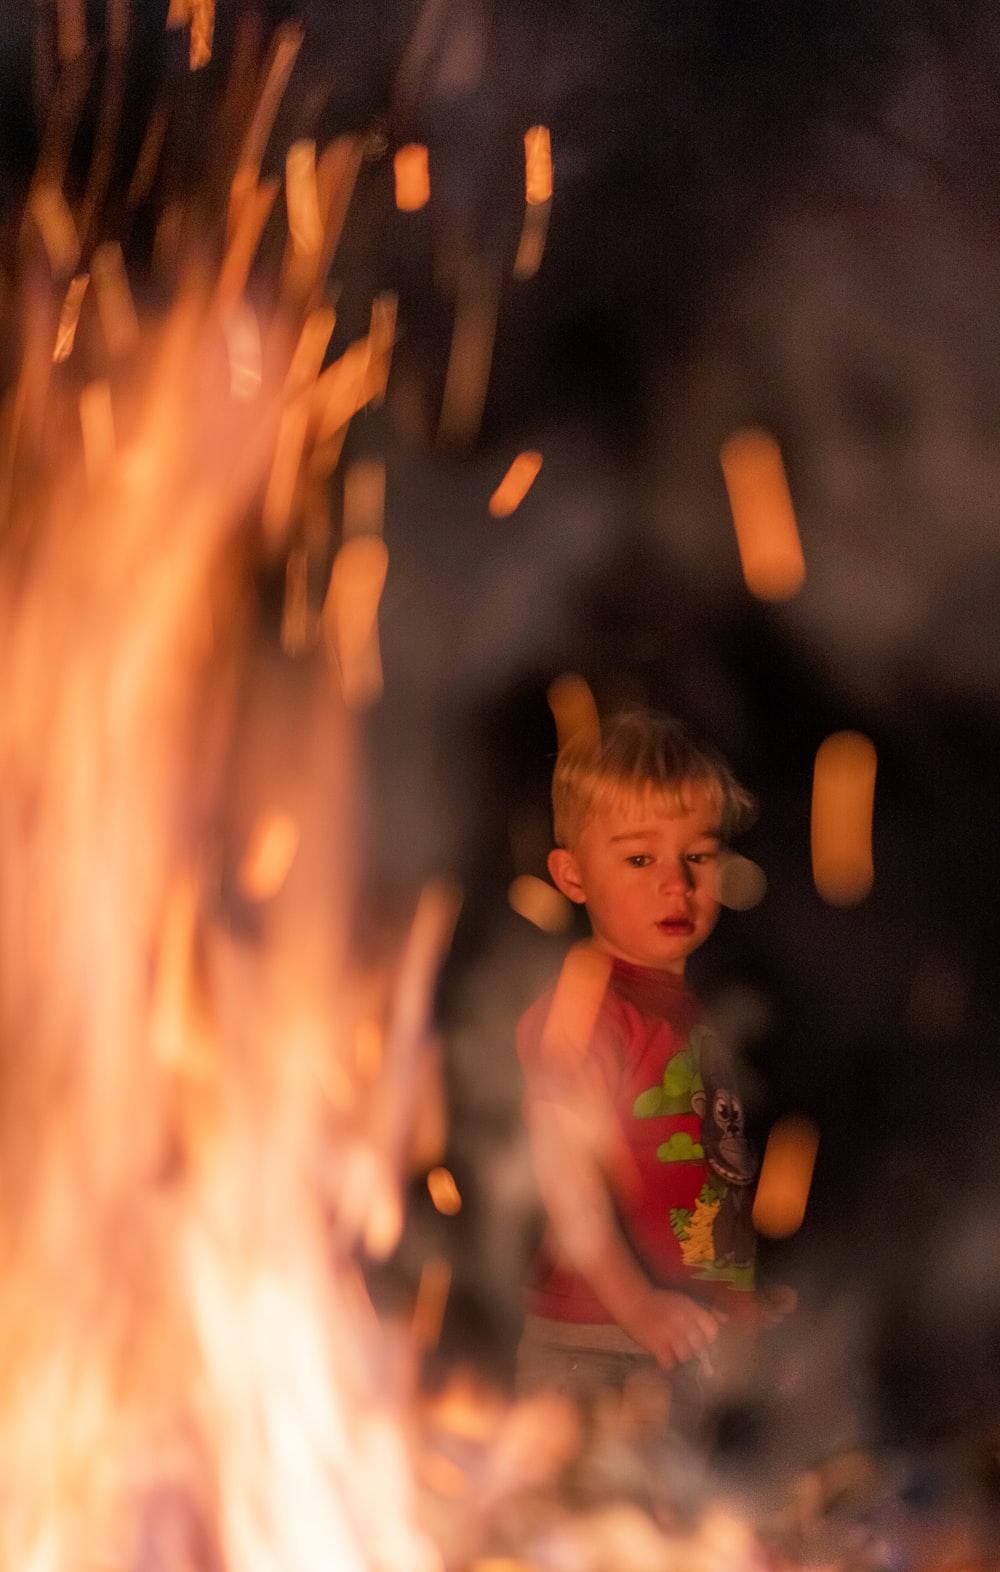 boy in green and white floral shirt standing near fire